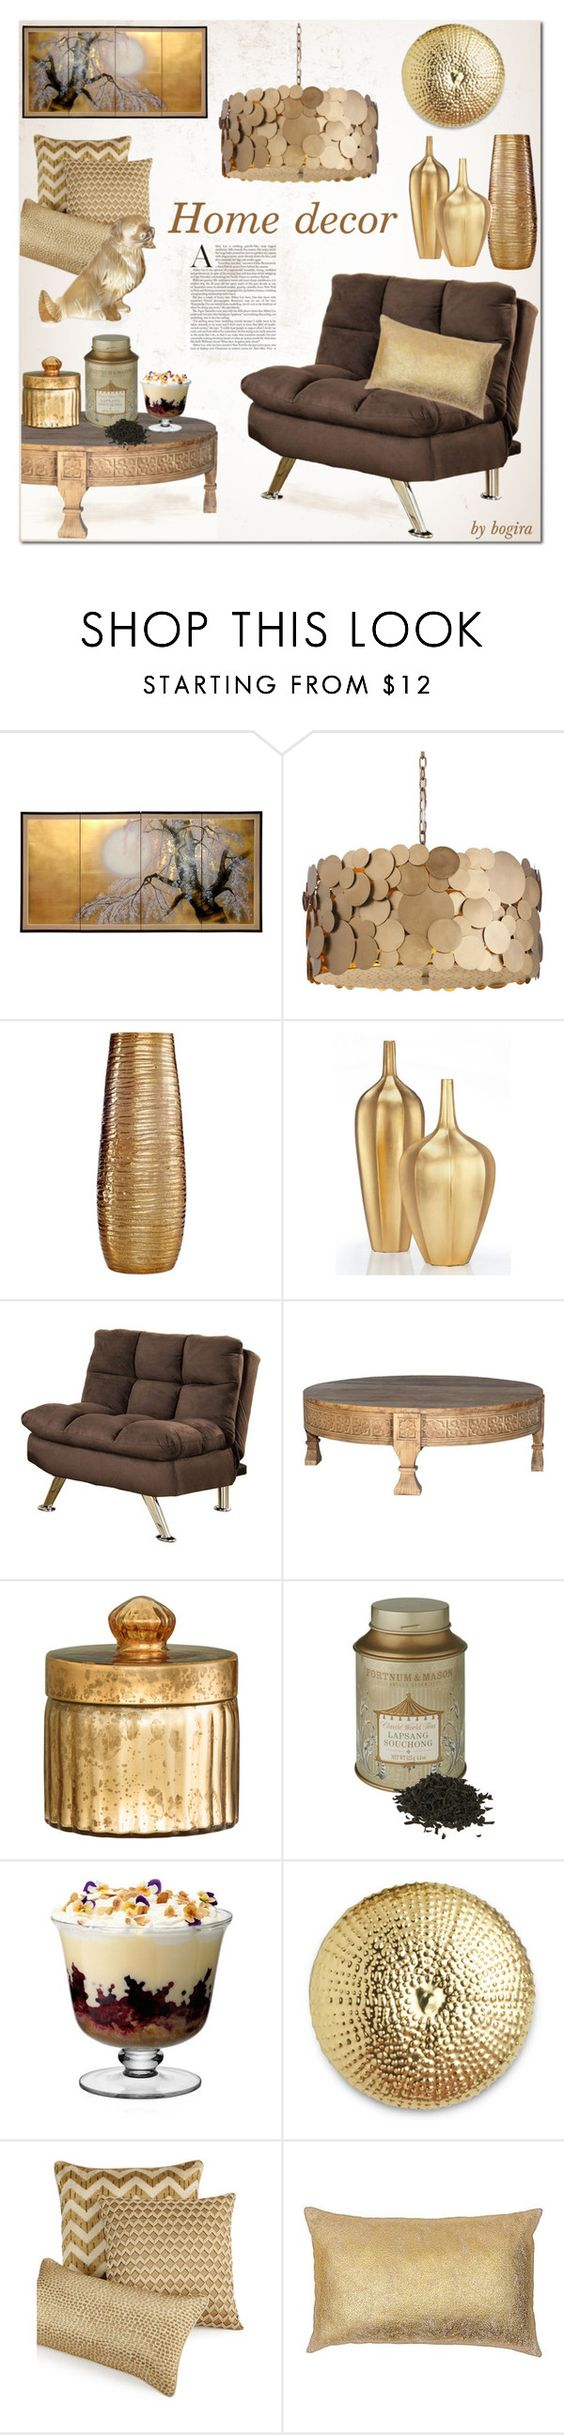 """Home decor"" by bogira ❤ liked on Polyvore featuring interior, interiors, interior design, home, home decor, interior decorating, DwellStudio, Simplydesignz, Venetian Worldwide and H&M"